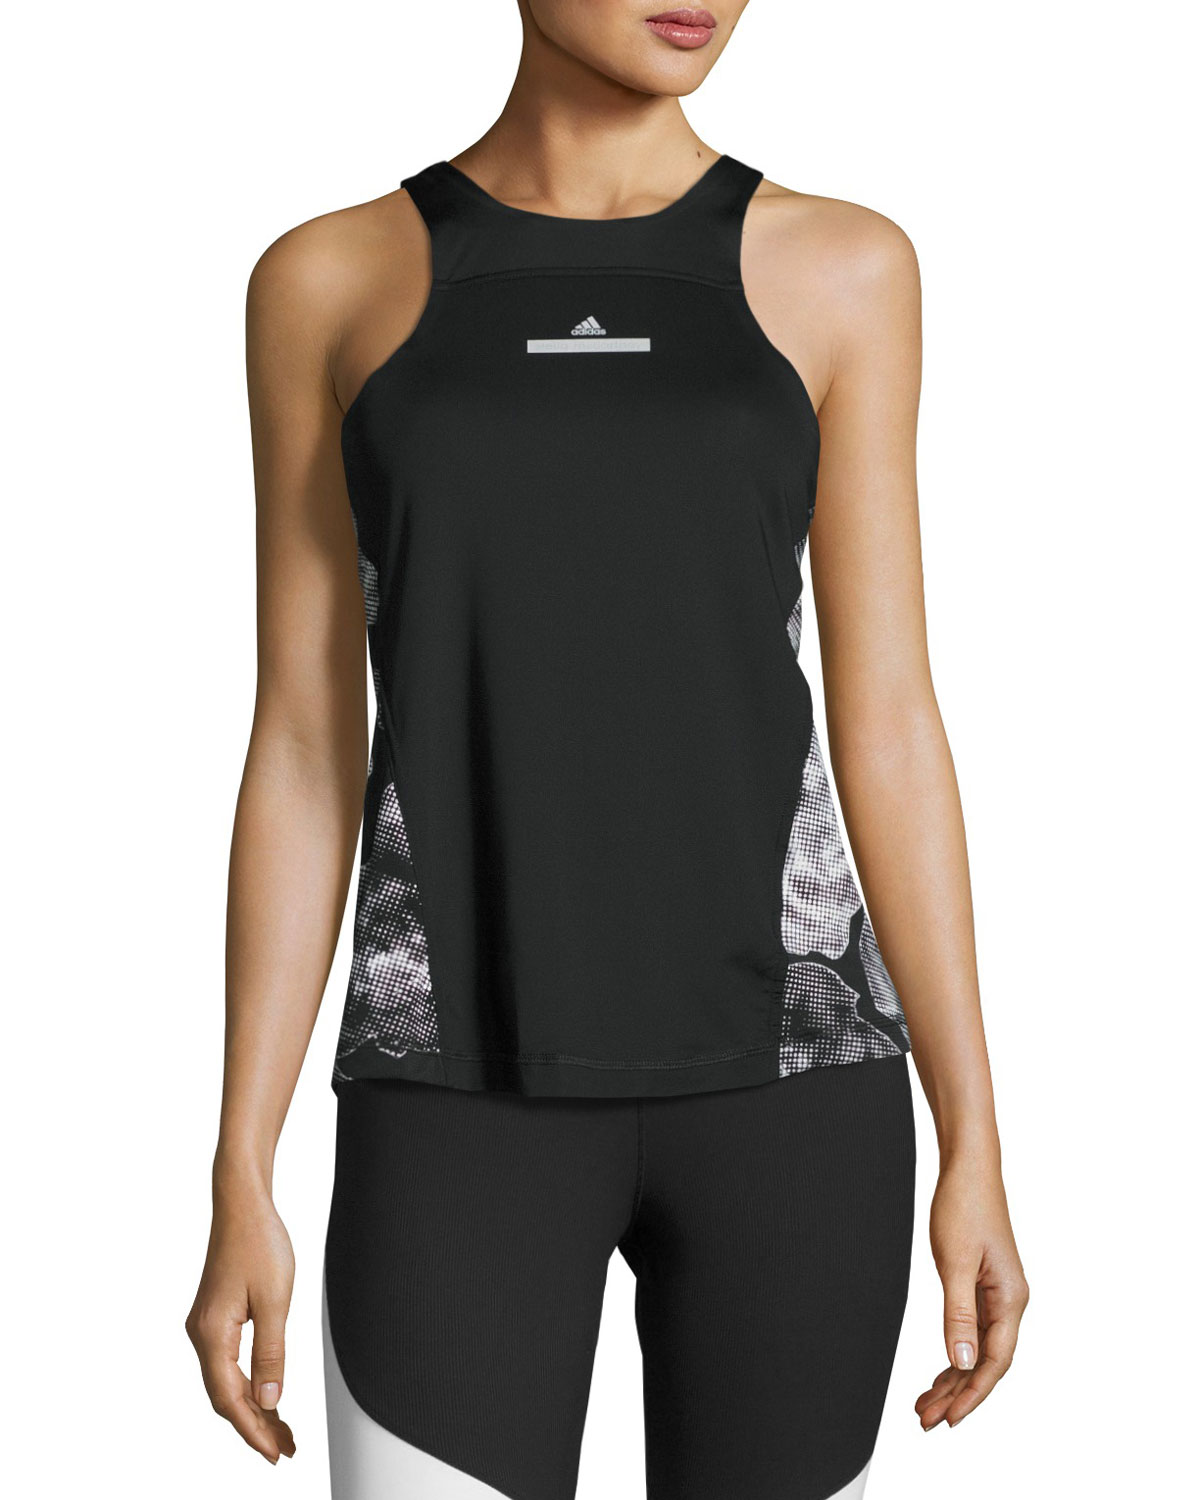 8ecdcb0127e8b adidas by Stella McCartney Run Adizero Tank Top